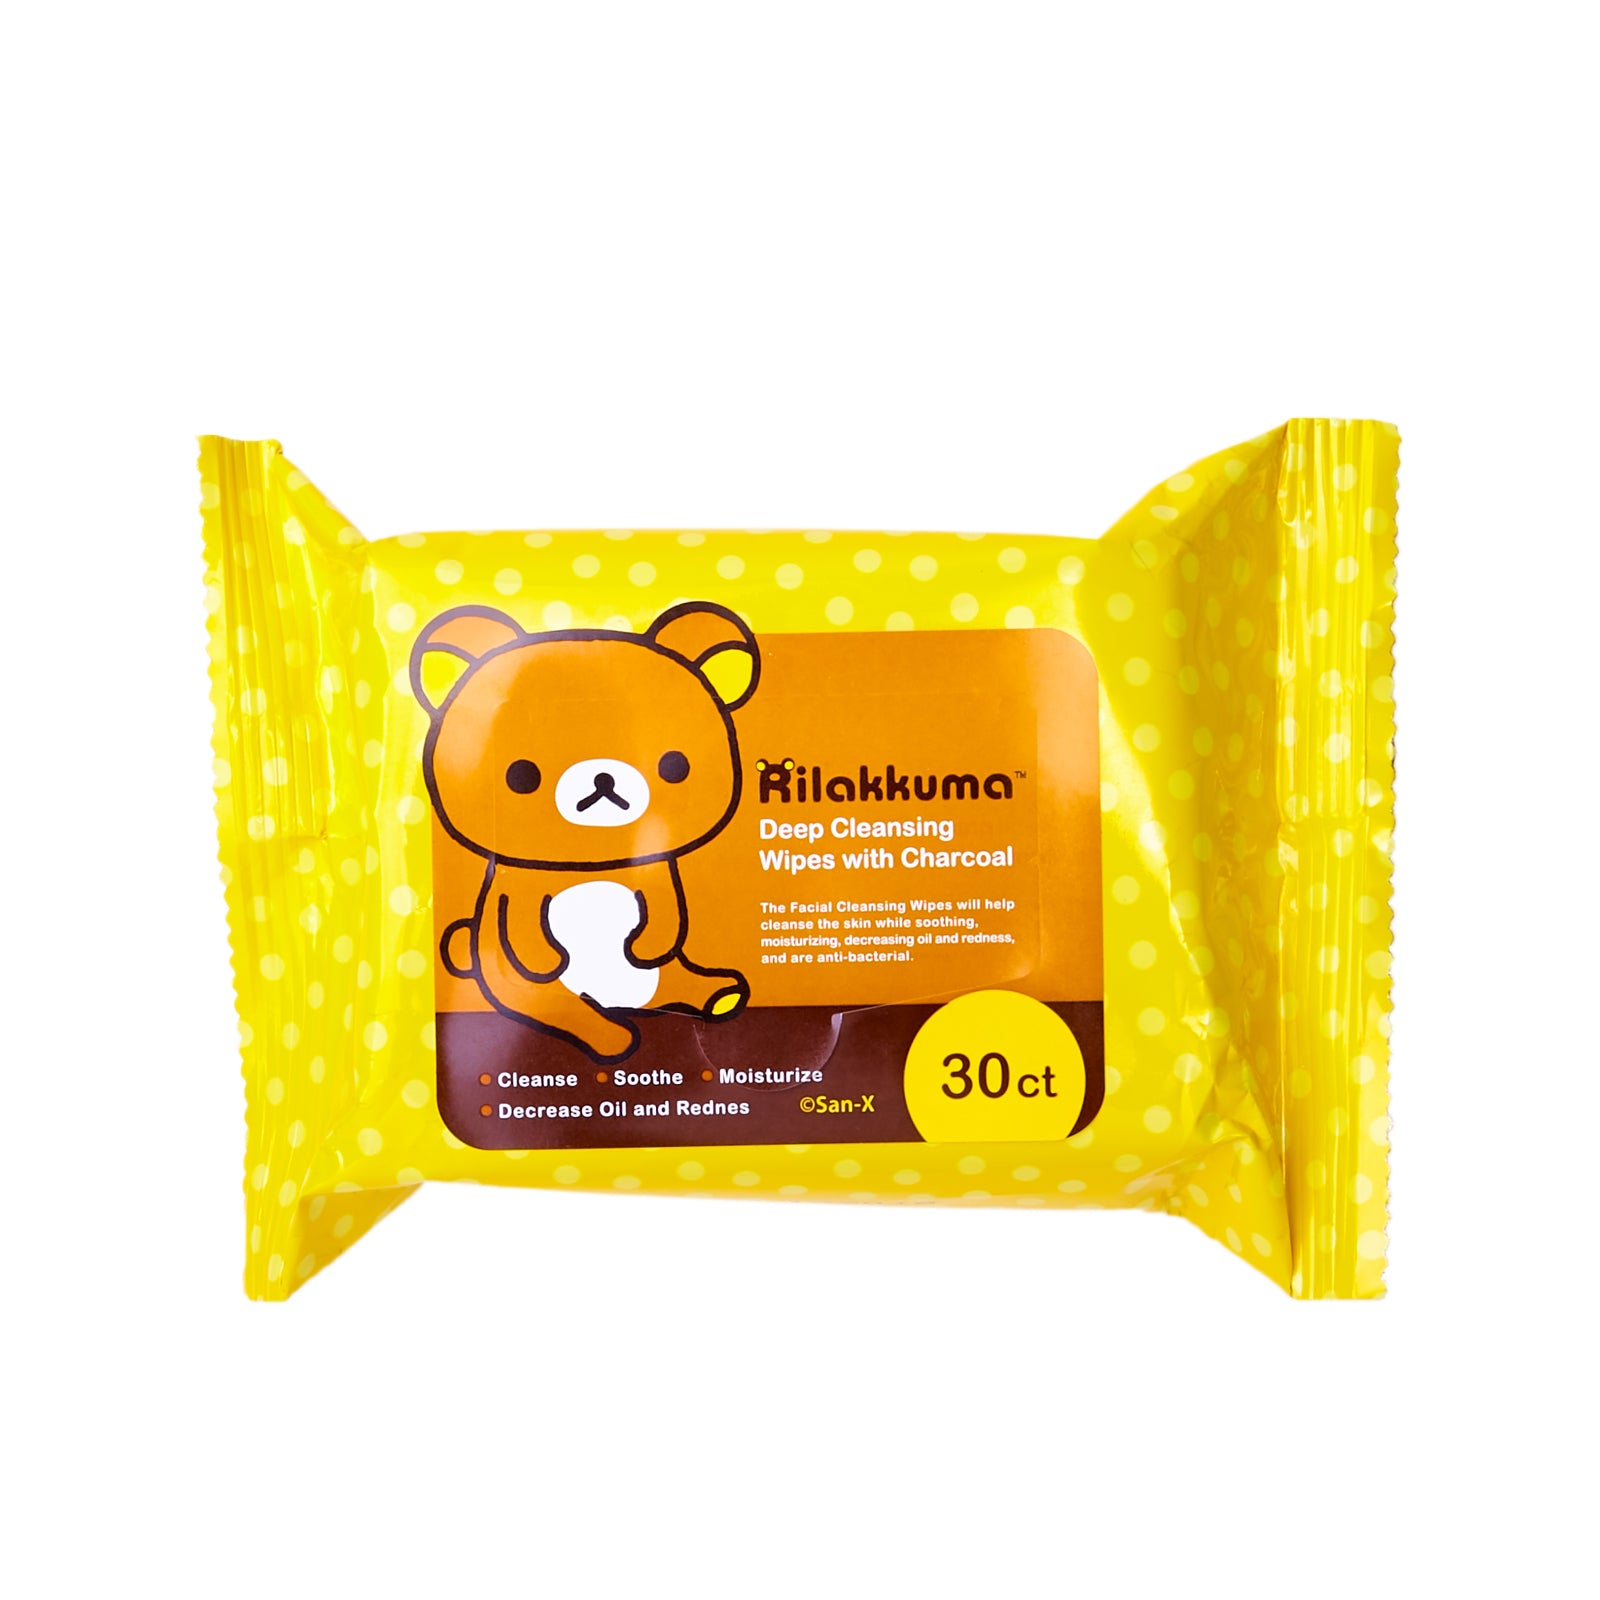 Rilakkuma Deep Cleansing Wipes with Charcoal